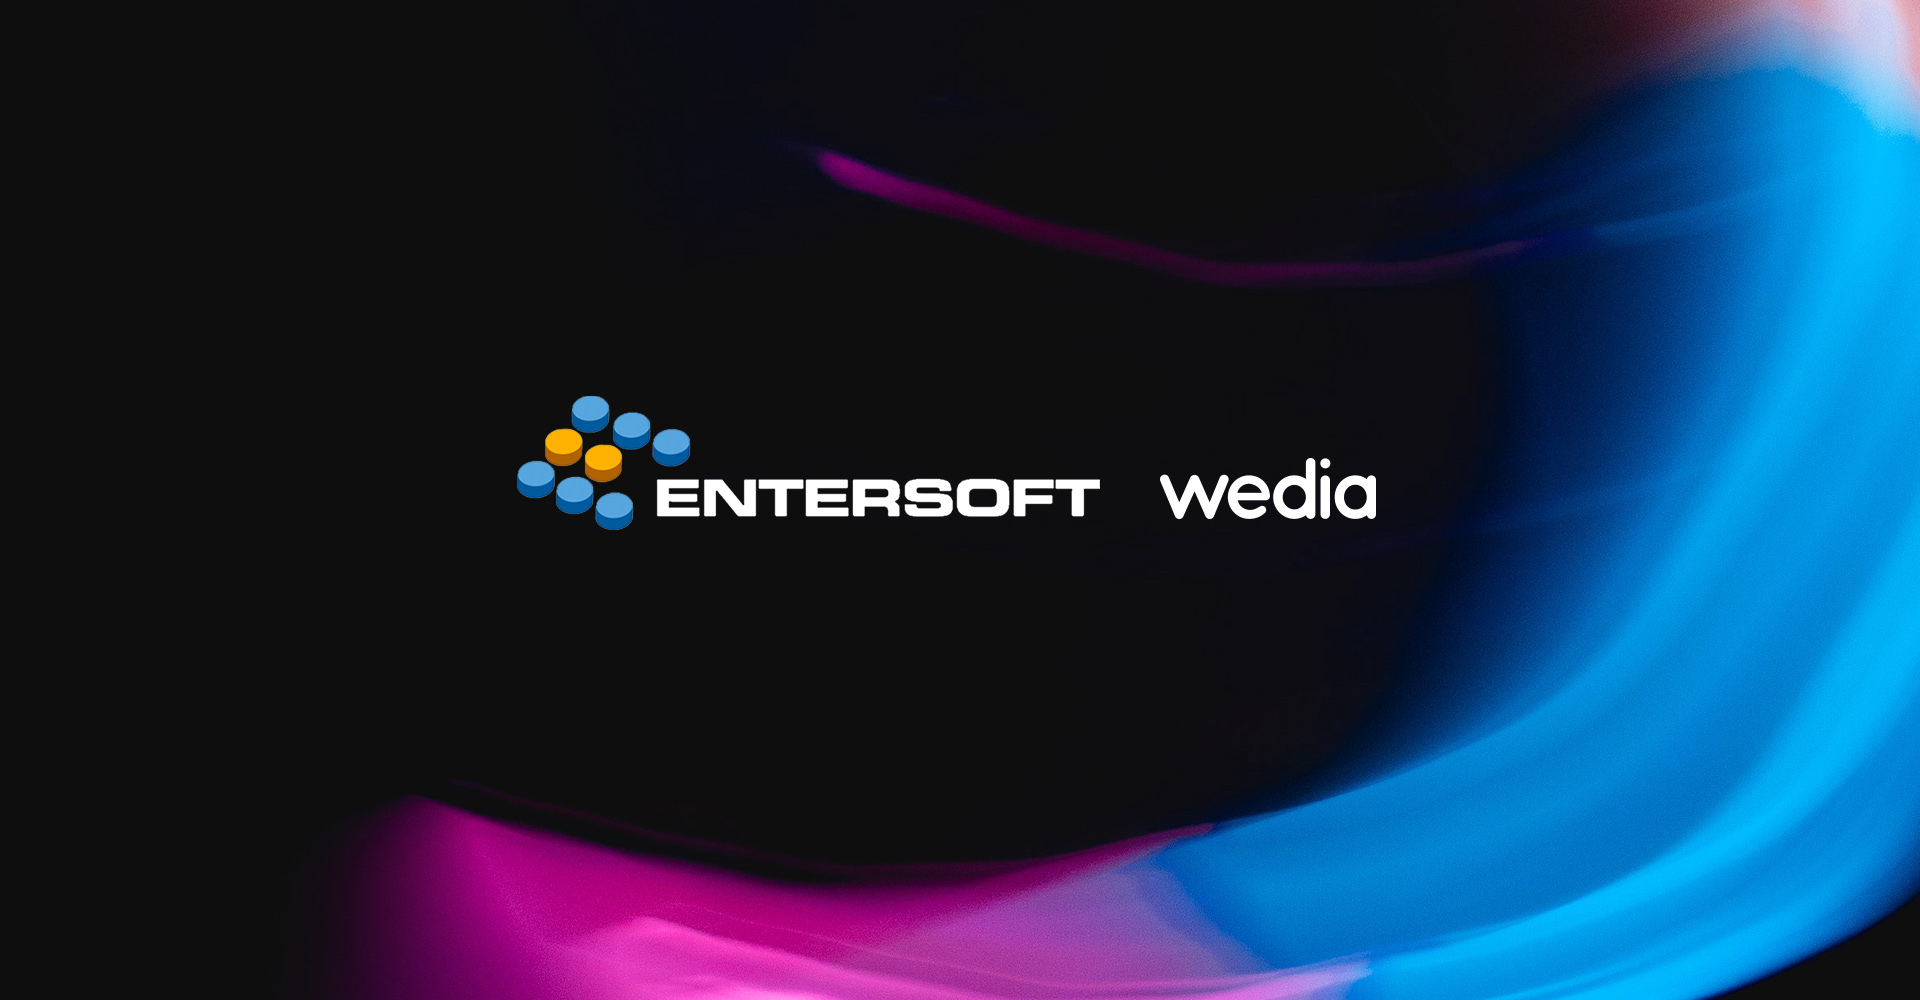 Entersoft invests in the growing market of eCommerce after acquiring 100% of Wedia Ltd